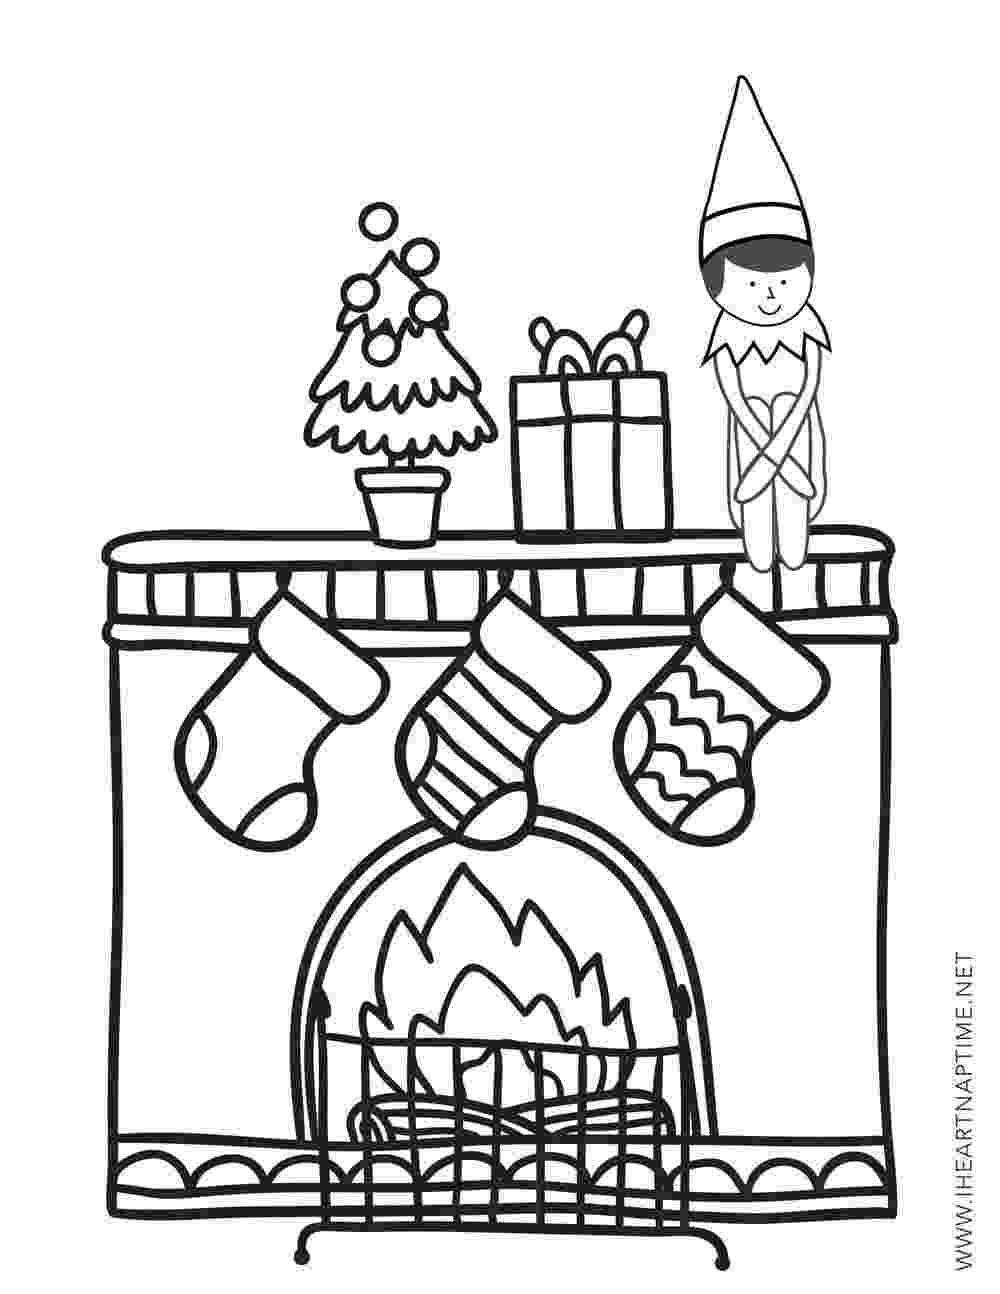 elf on the shelf printable coloring pages 30 free printable elf on the shelf coloring pages on printable the shelf elf coloring pages